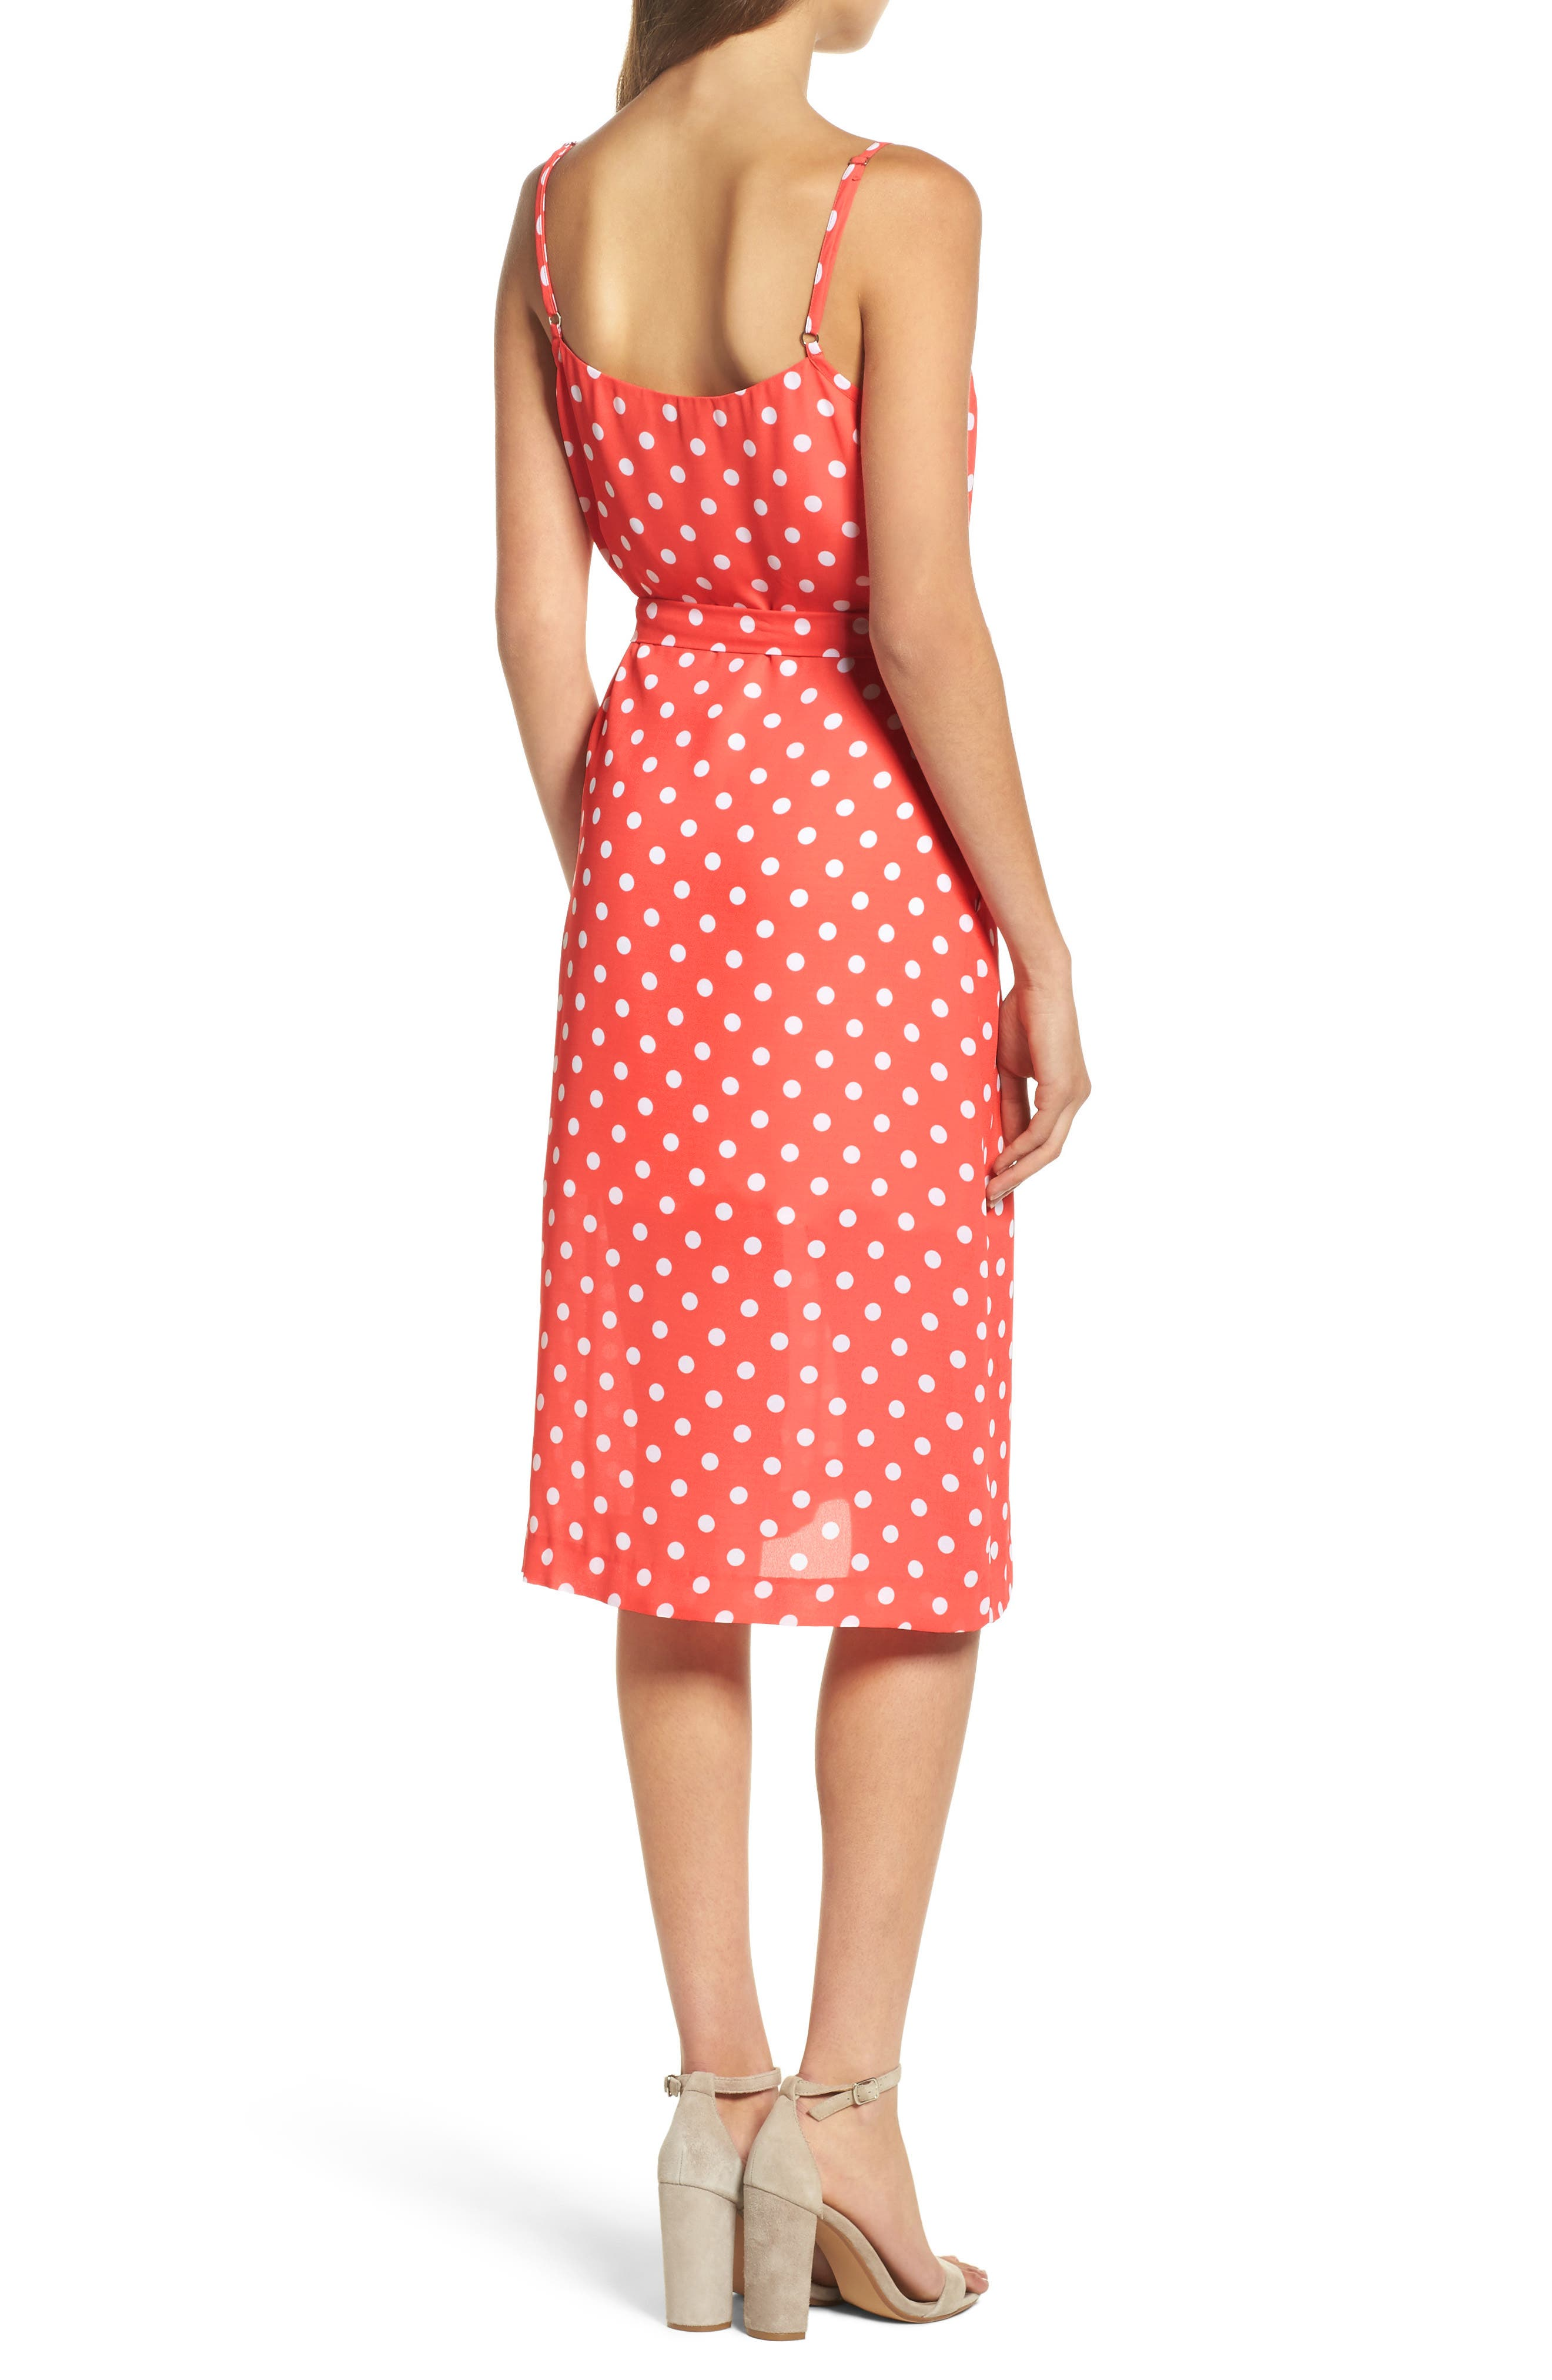 Flower Frolicking Midi Dress,                             Alternate thumbnail 2, color,                             Coral Polka Dot